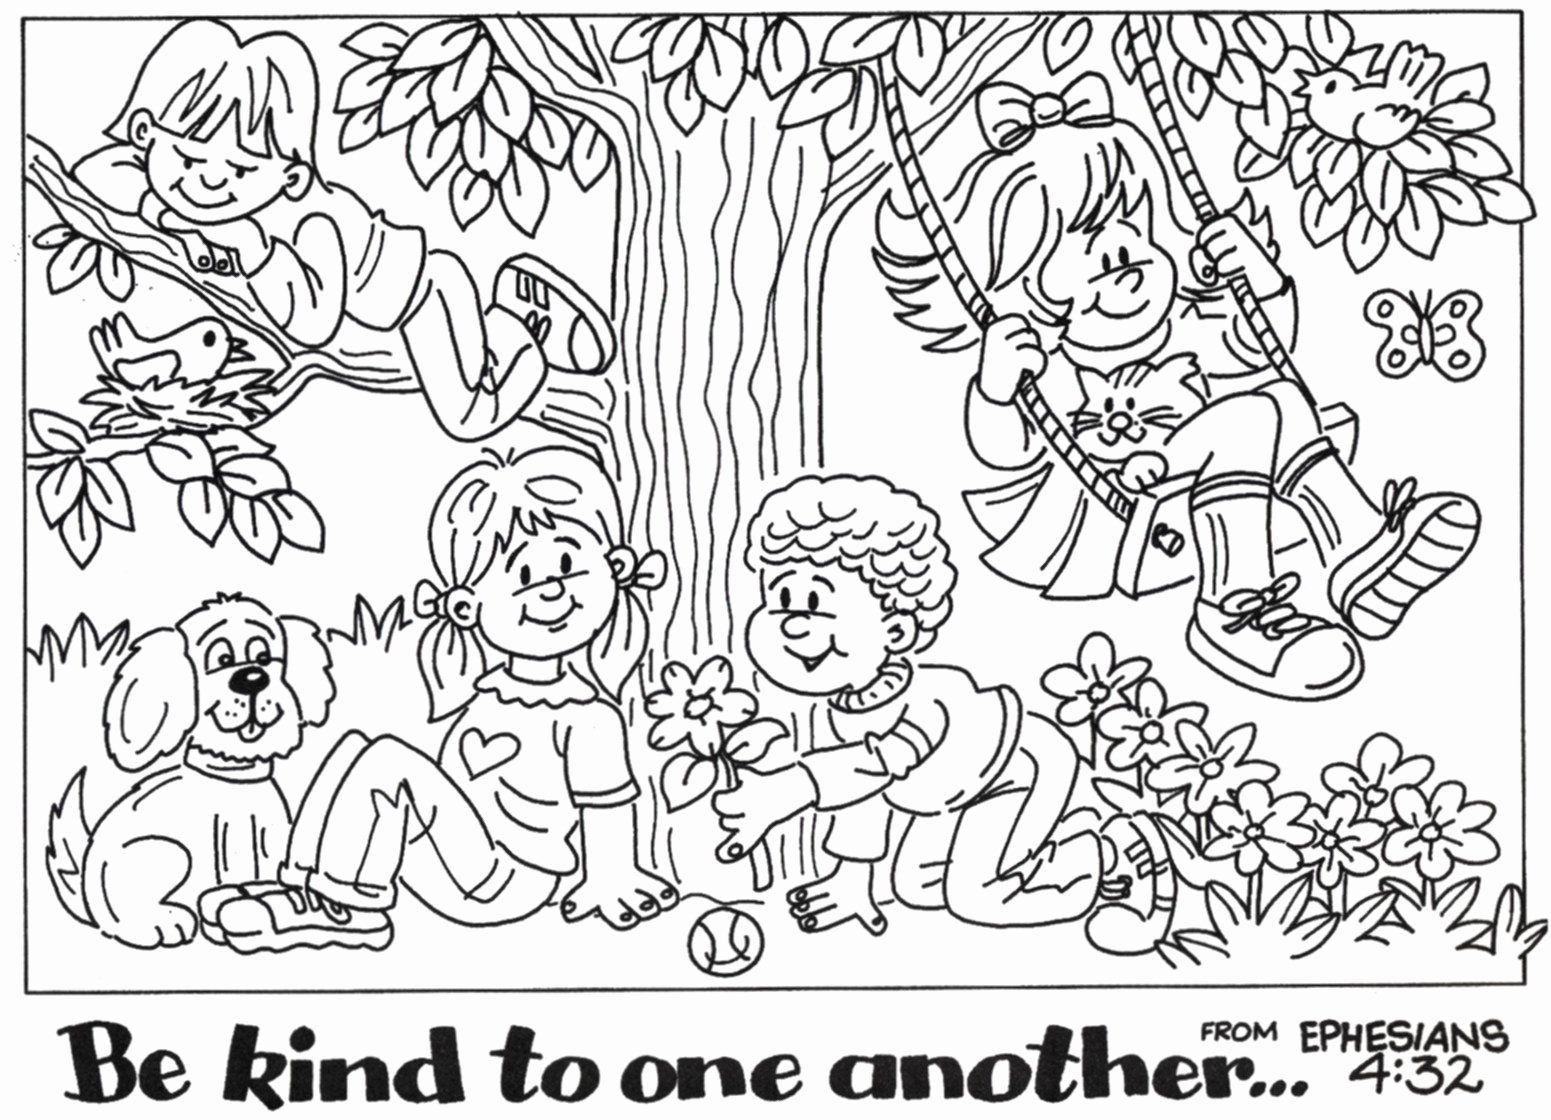 Spring Break Coloring Sheets In 2020 School Coloring Pages Bible Coloring Christian Coloring